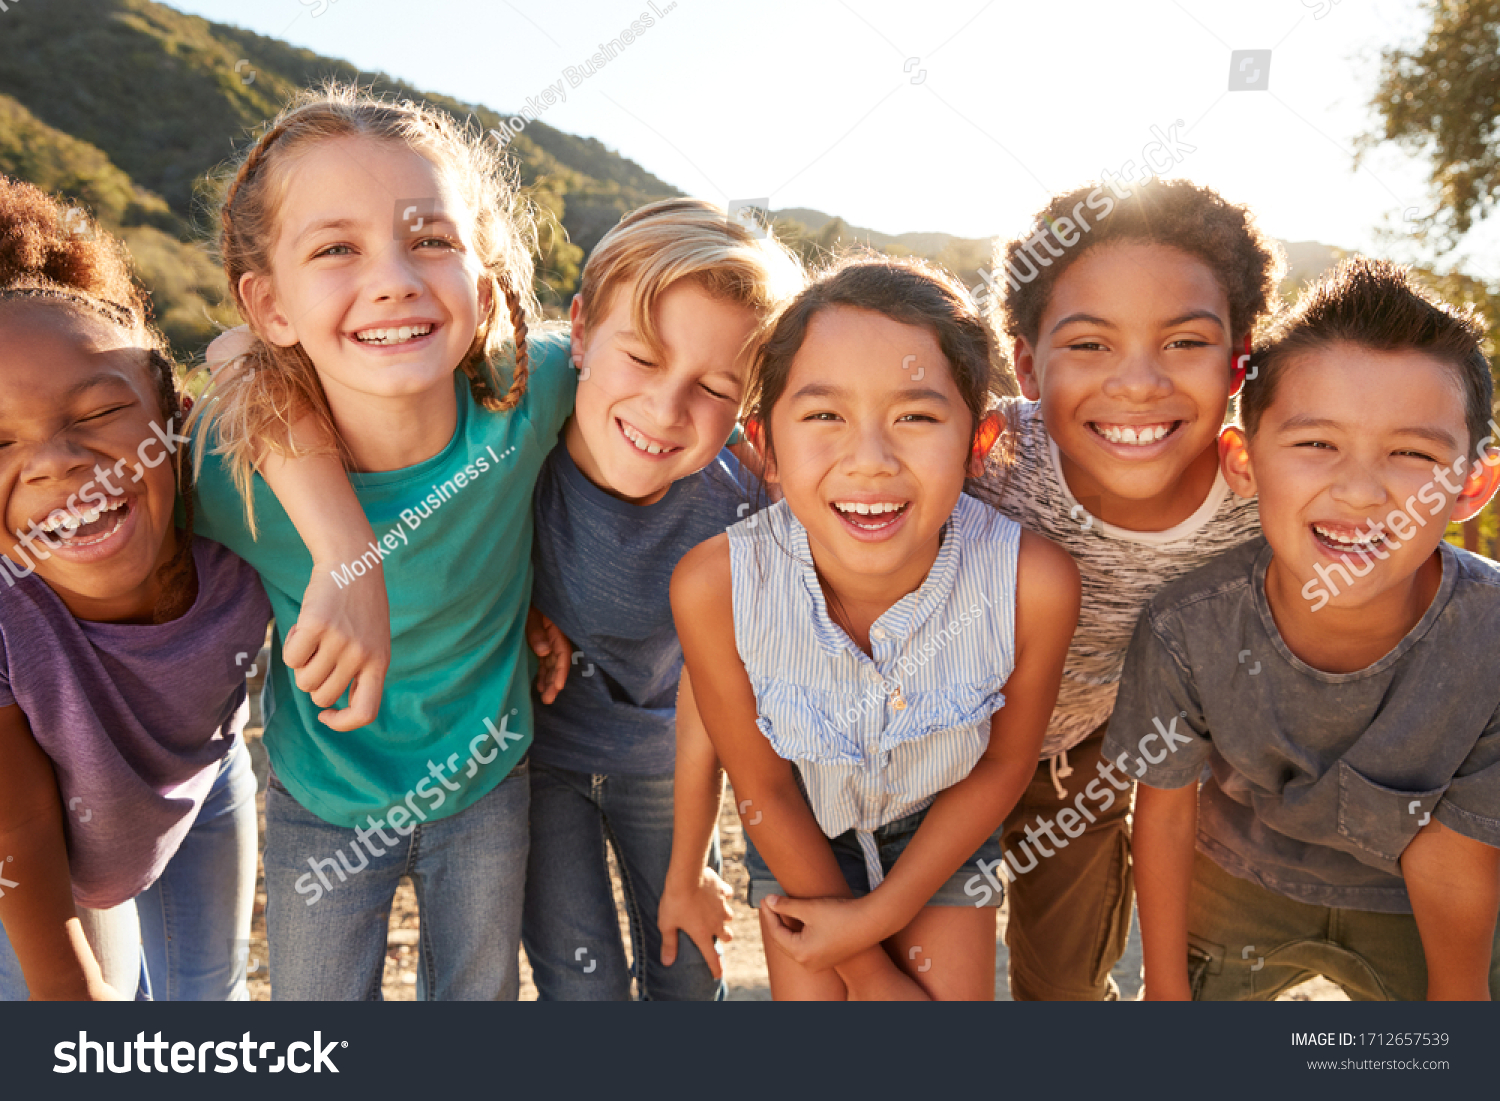 Portrait Of Multi-Cultural Children Hanging Out With Friends In Countryside Together